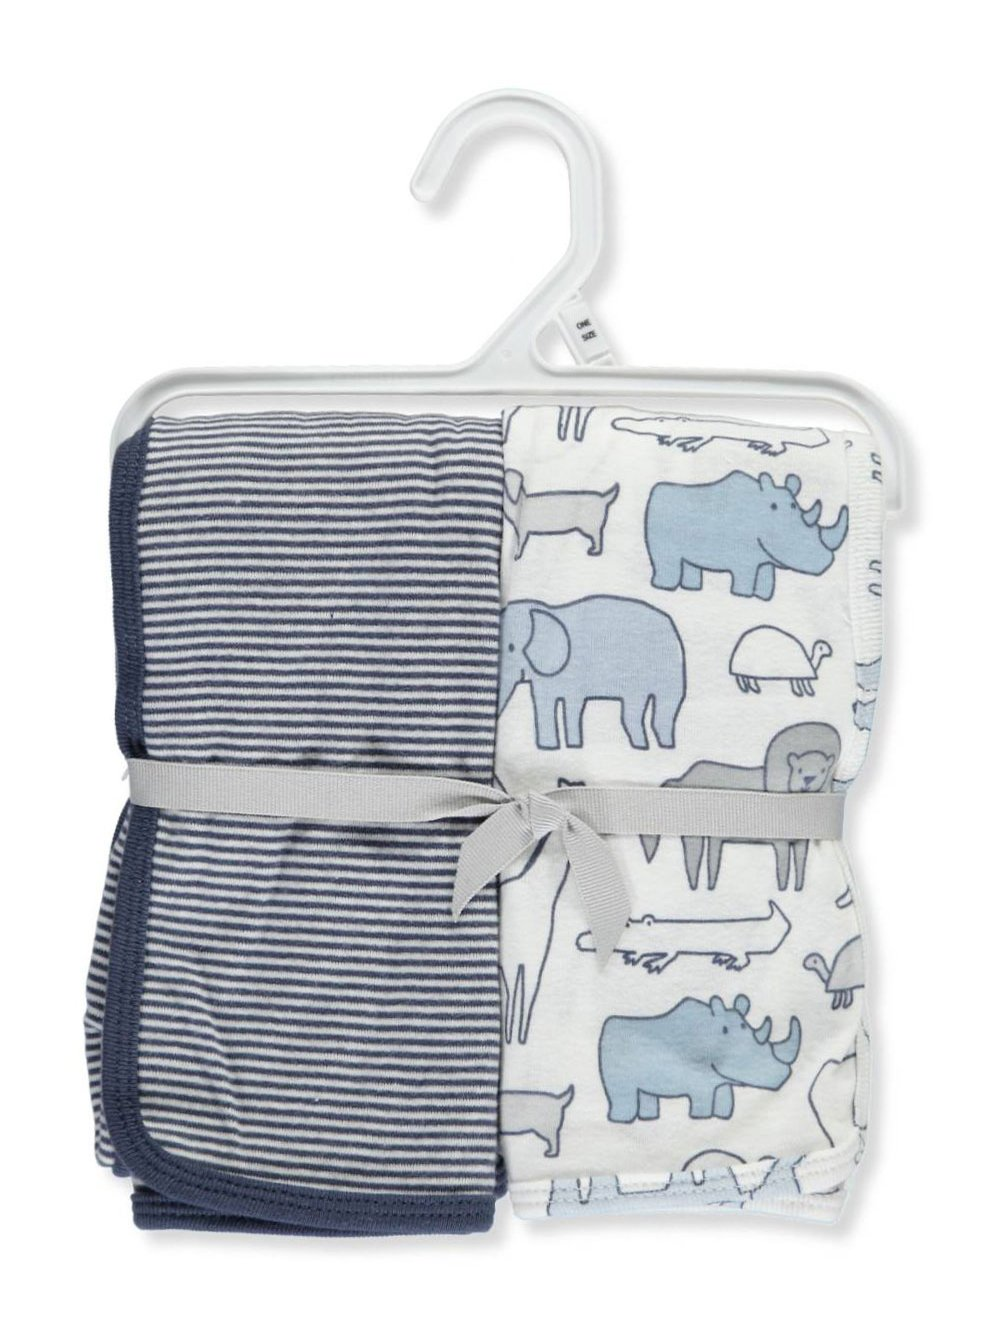 Carter's 2-Pack Swaddle Blankets - blue/multi, one size Carter's 126G743